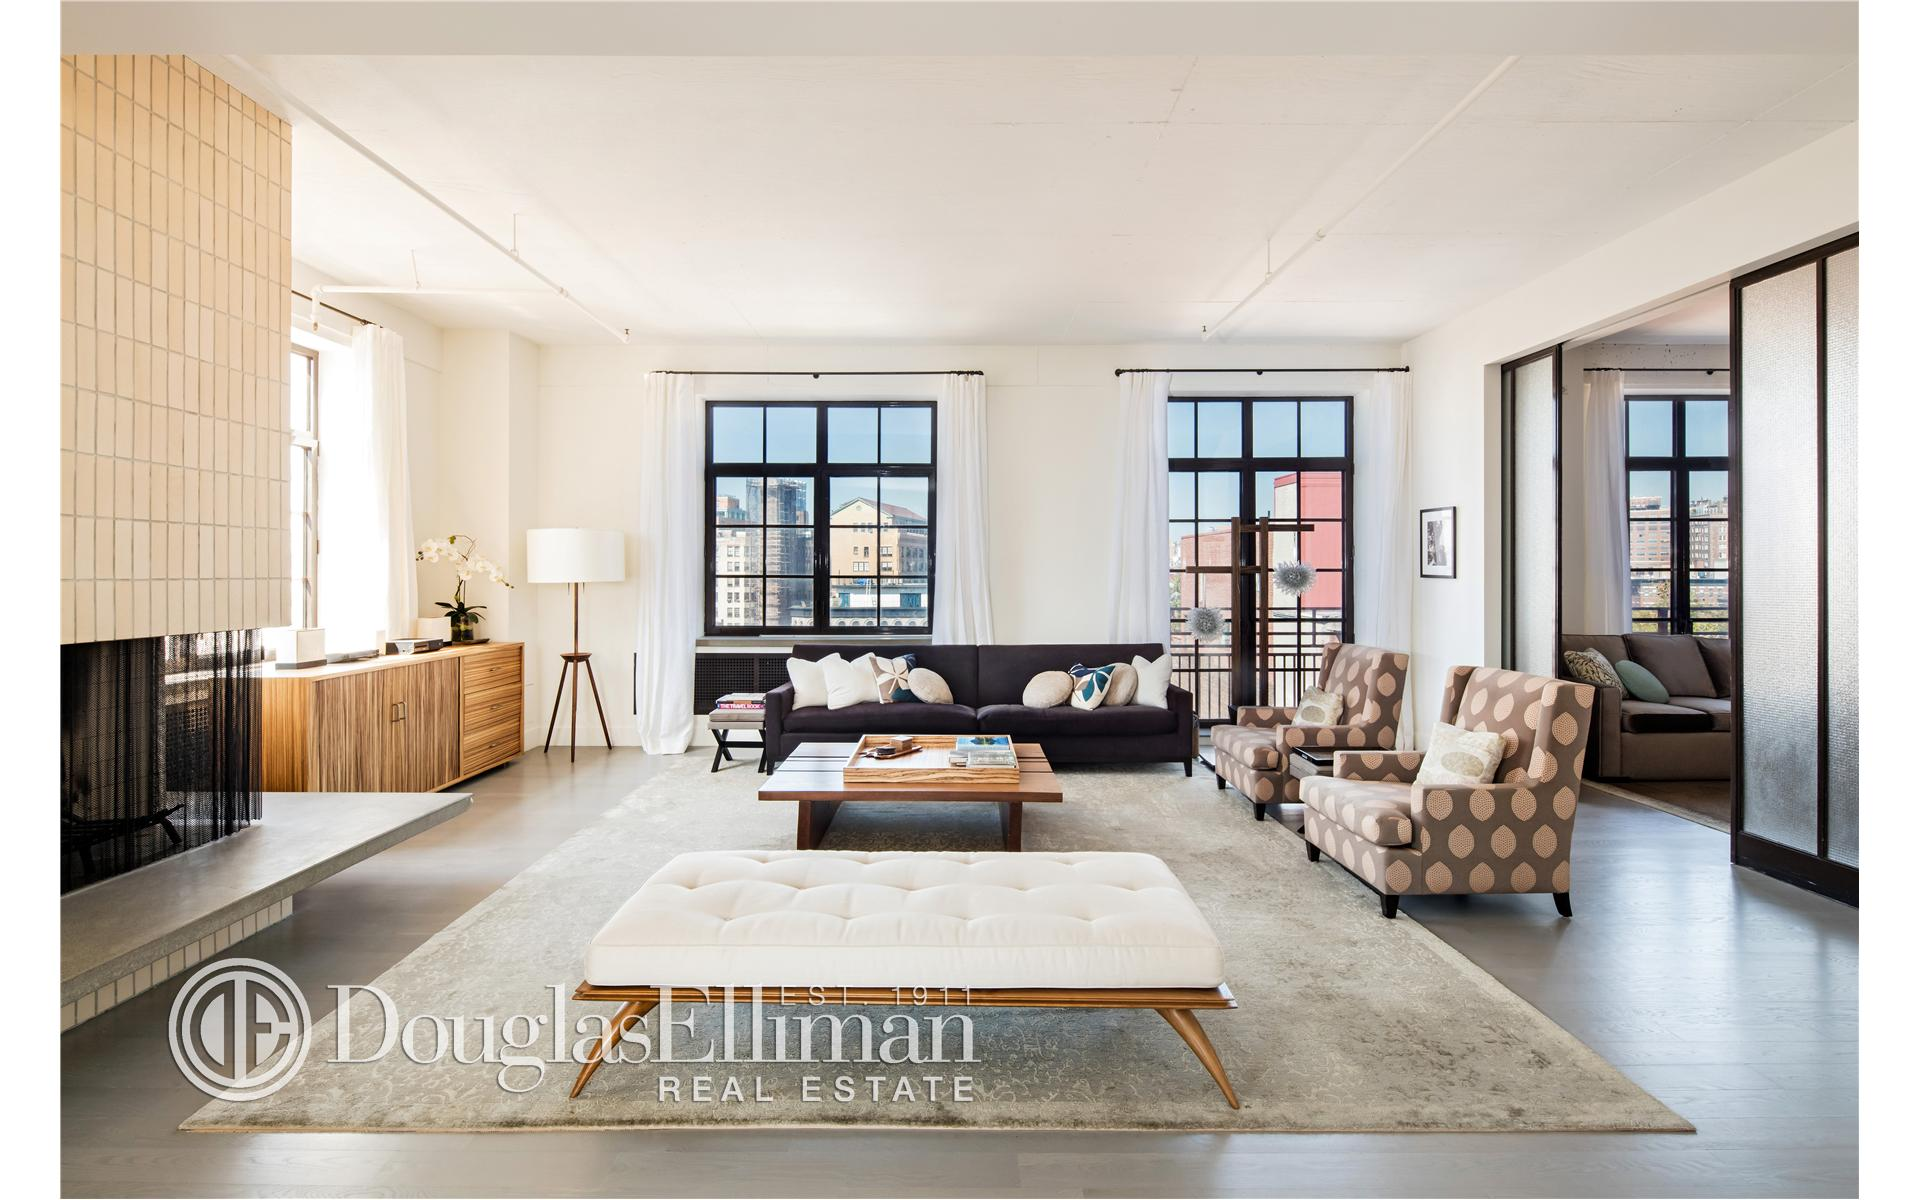 Condominium for Sale at 132 Perry Street New York, New York 10014 United States